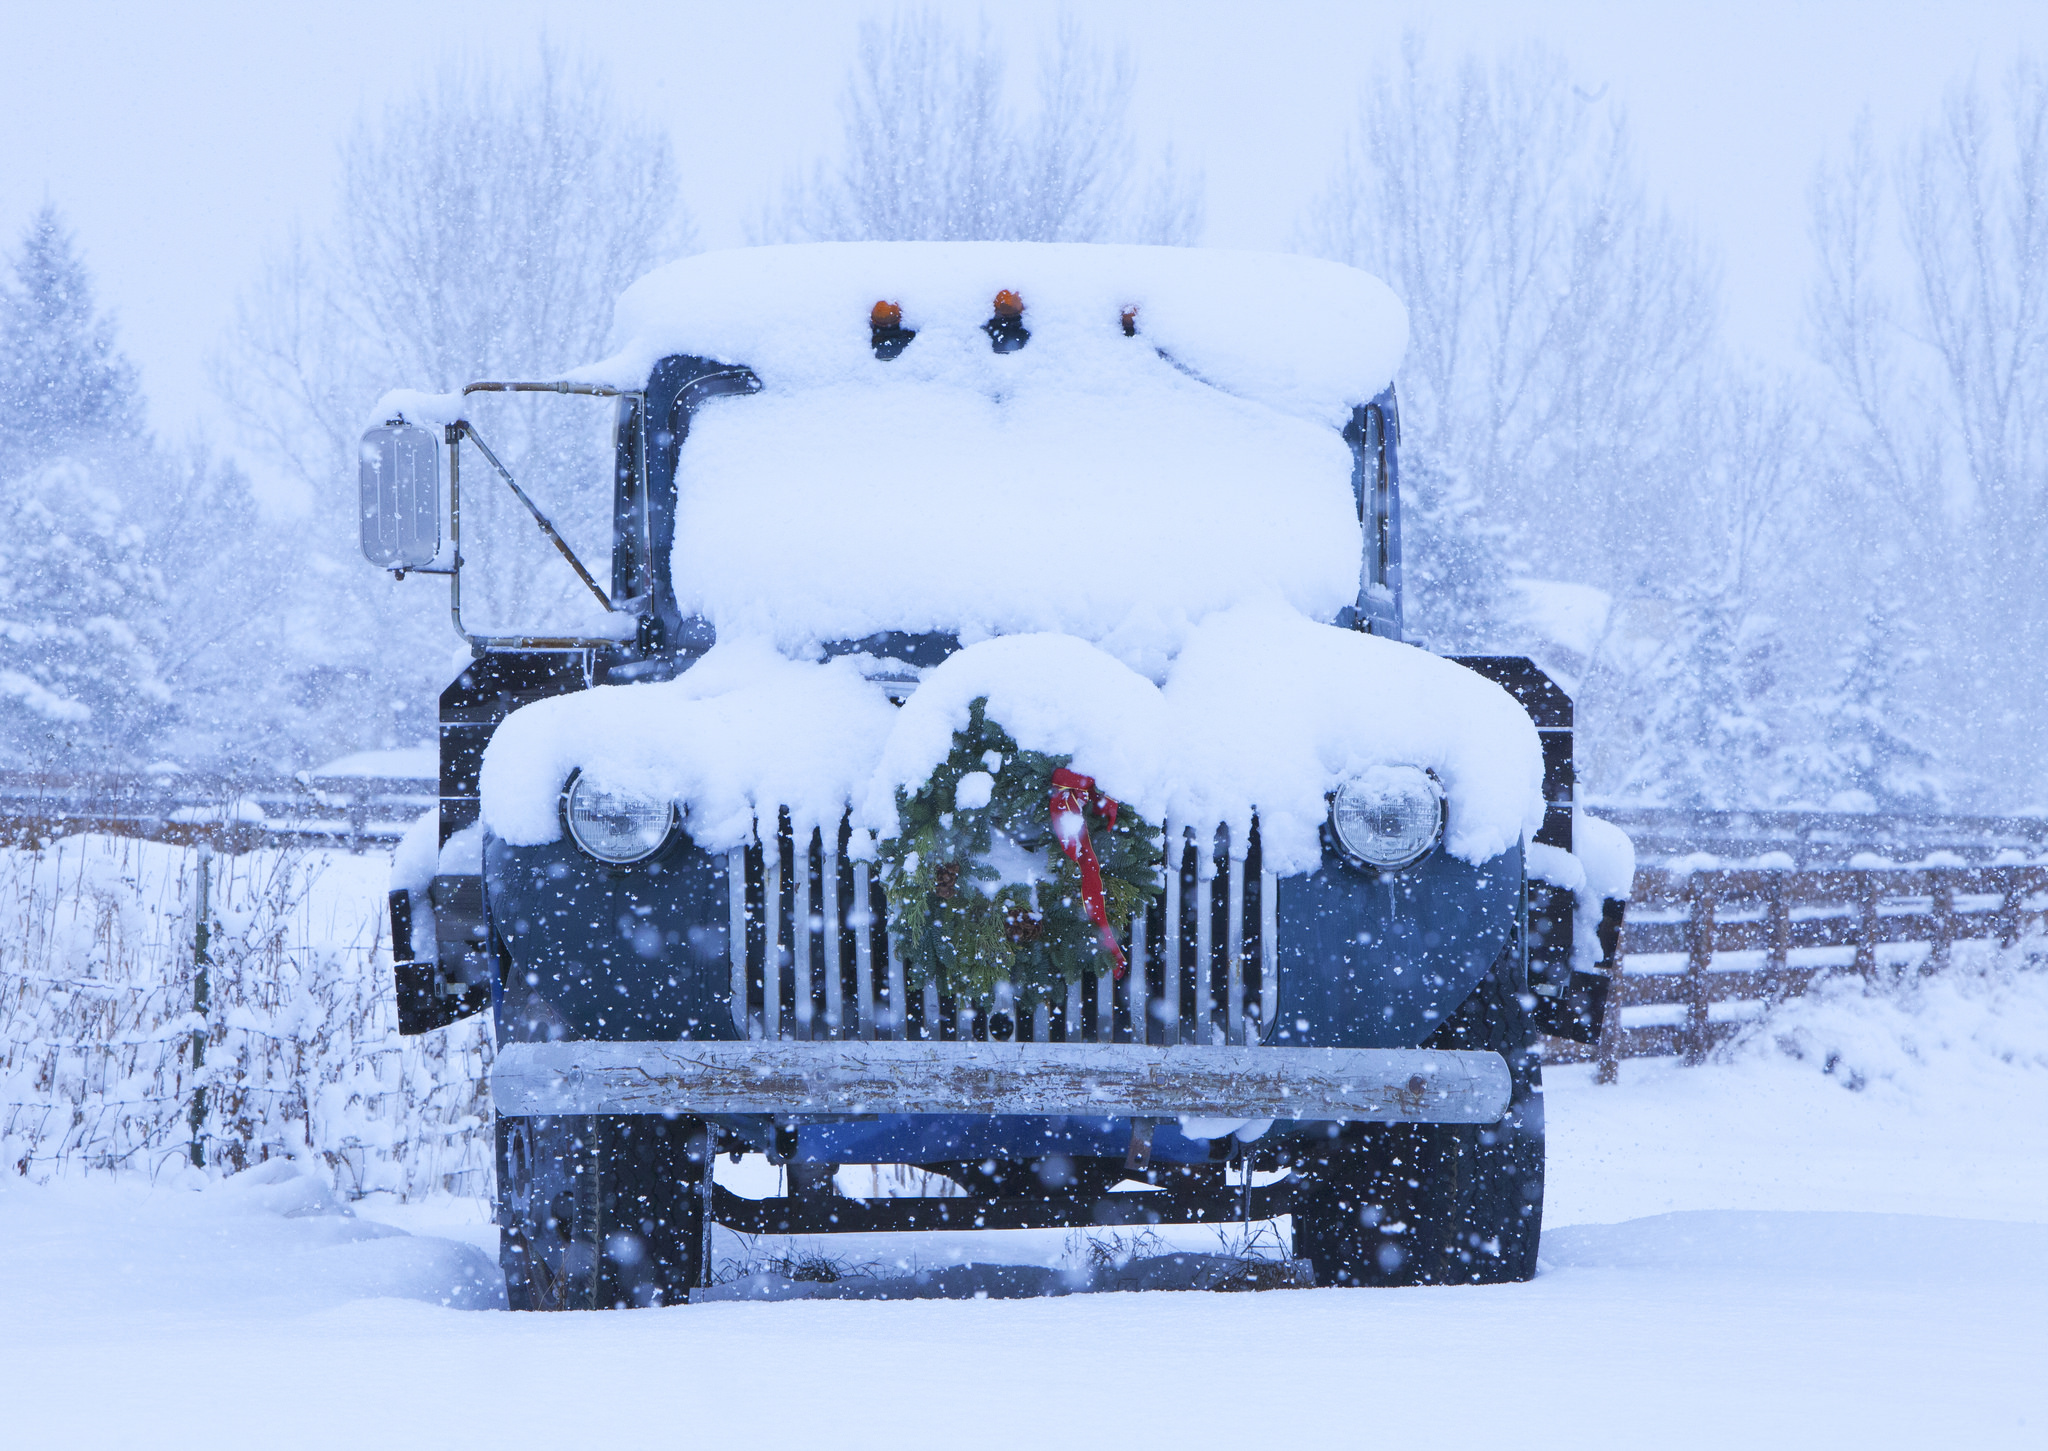 Old Truck with Christmas Wreath